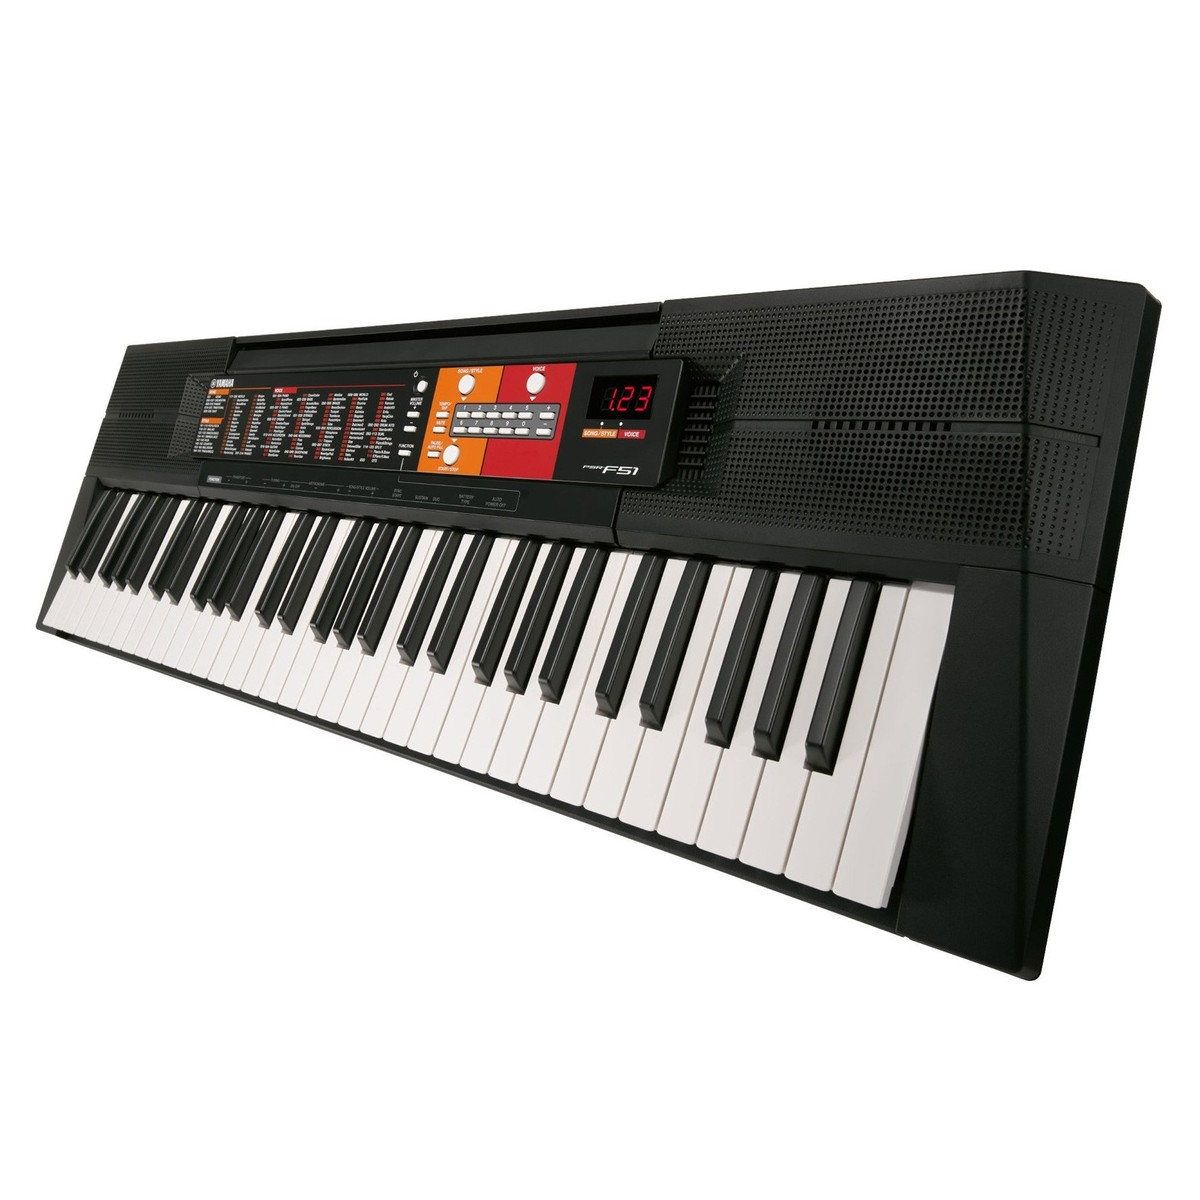 yamaha psr f51 portable keyboard at